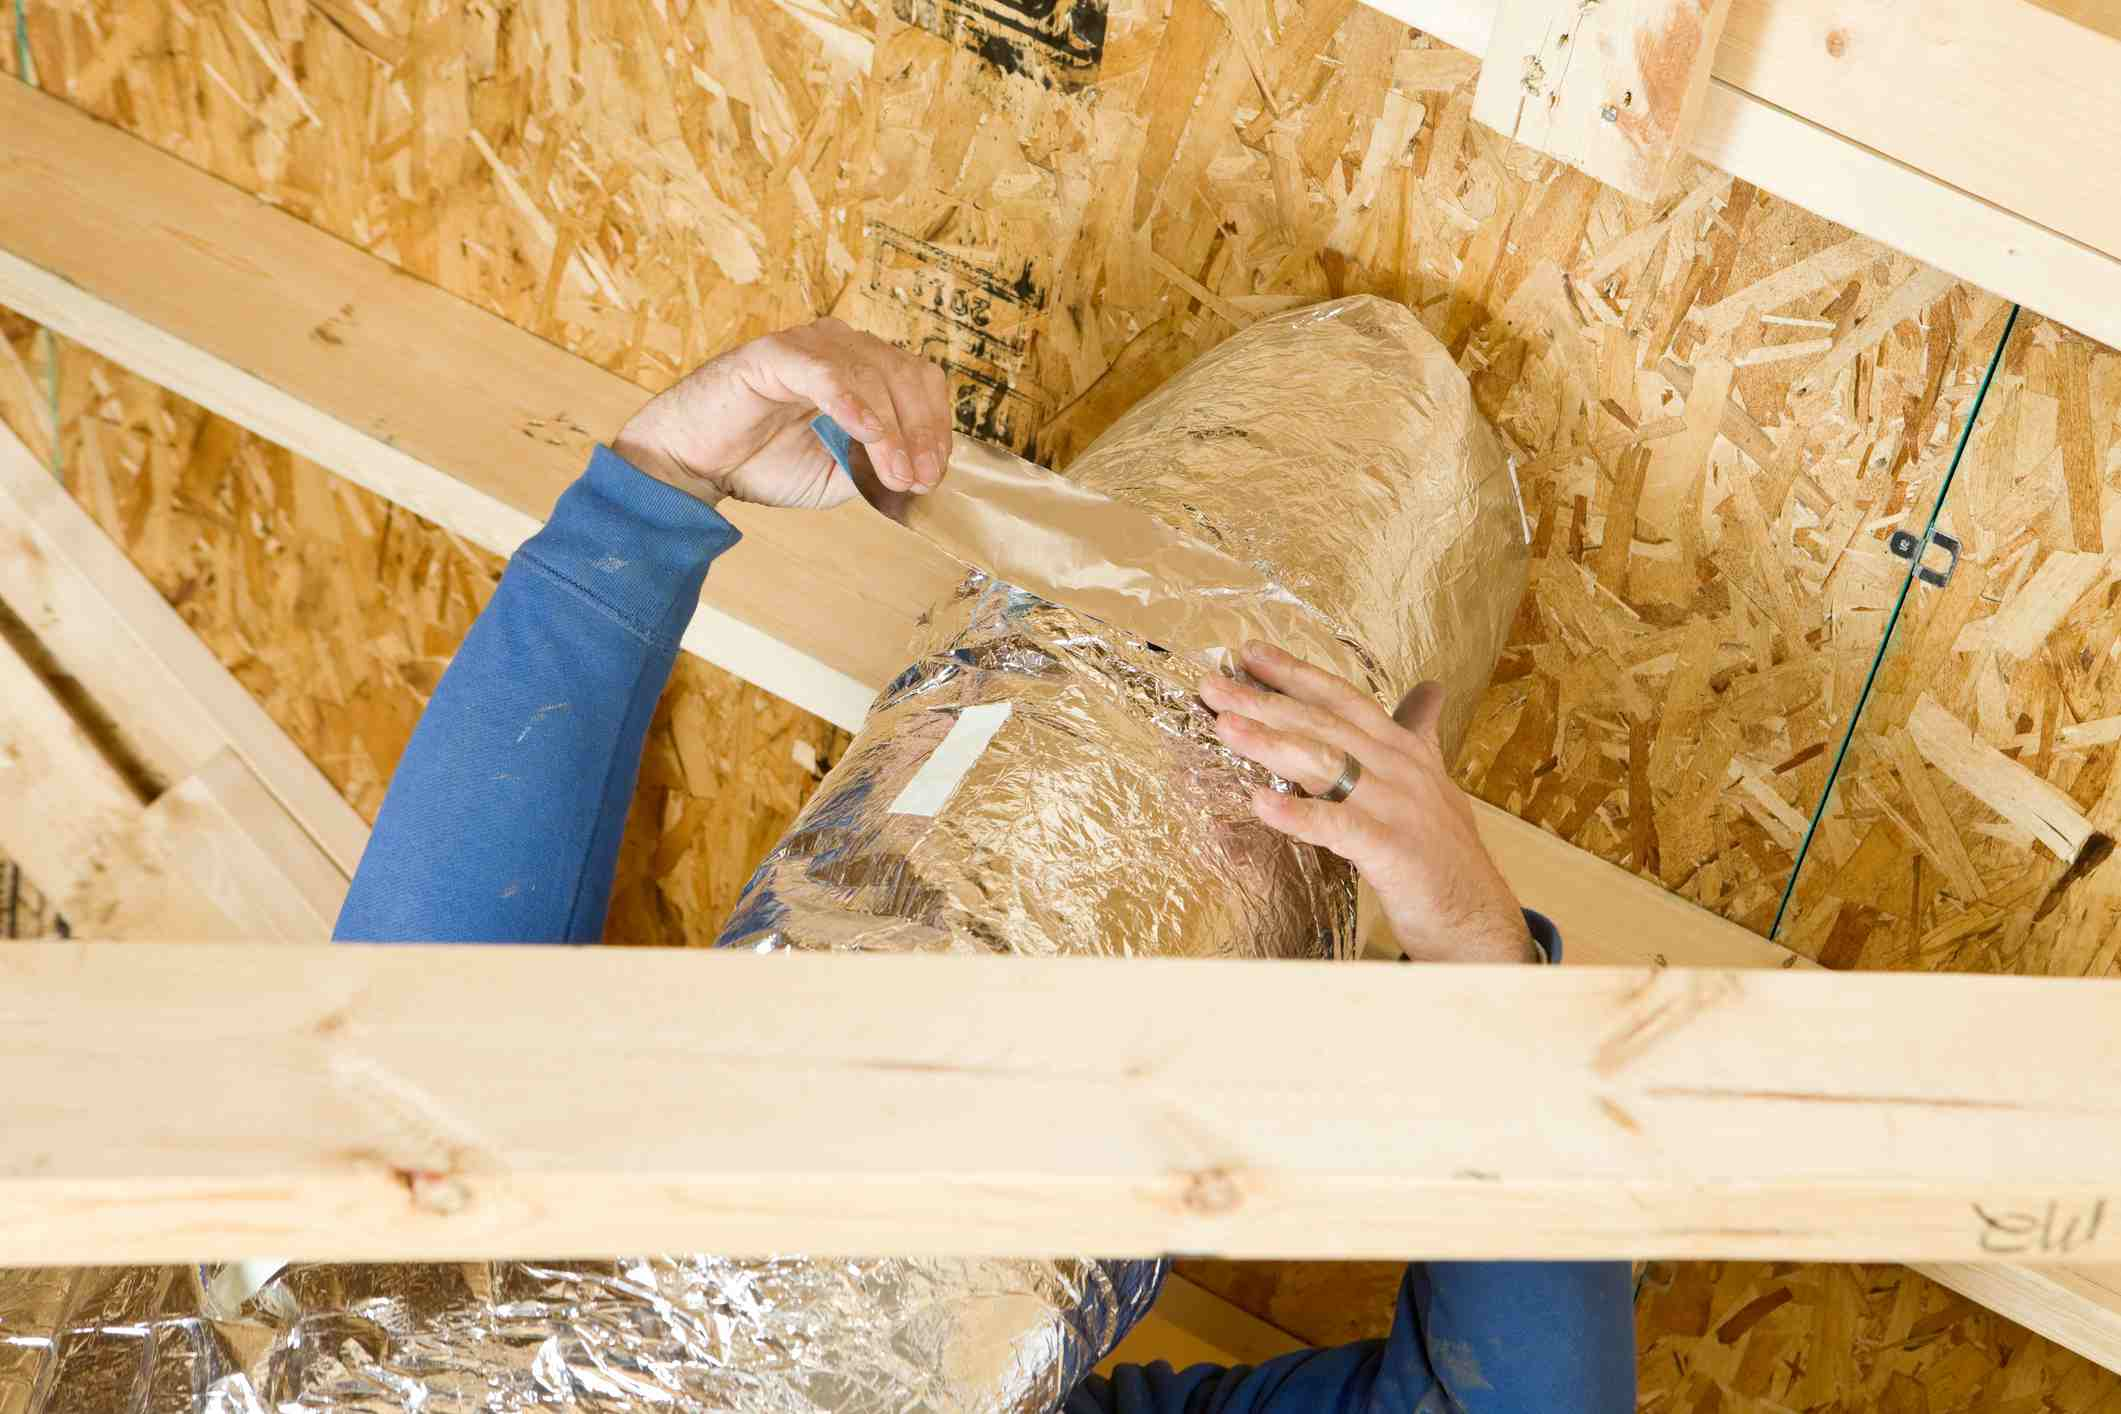 Worker Insulating an attic vent duct with aluminum foil